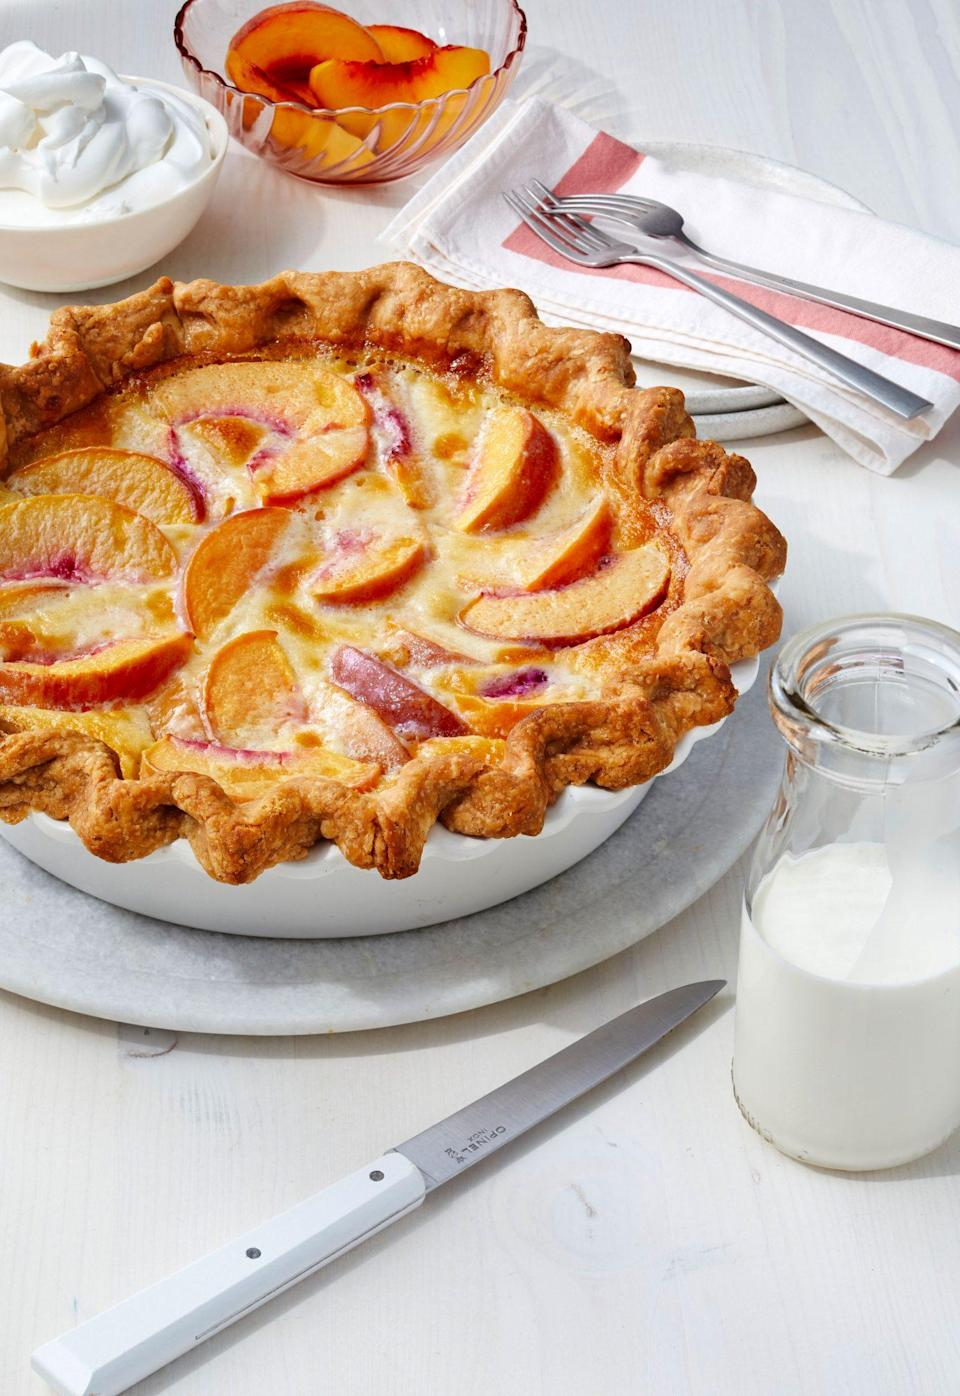 "<p><strong>Recipe: </strong><a href=""https://www.southernliving.com/recipes/peach-custard-pie"" rel=""nofollow noopener"" target=""_blank"" data-ylk=""slk:Peach Custard Pie"" class=""link rapid-noclick-resp""><strong>Peach Custard Pie</strong></a></p> <p>This recipe from our July 2020 issue combines the best of creamy old-school pies with fresh summer peaches. It's easy and beautiful, which makes it ideal for simple summer gatherings. One reader said it's ""easy and absolutely delicious.""</p>"